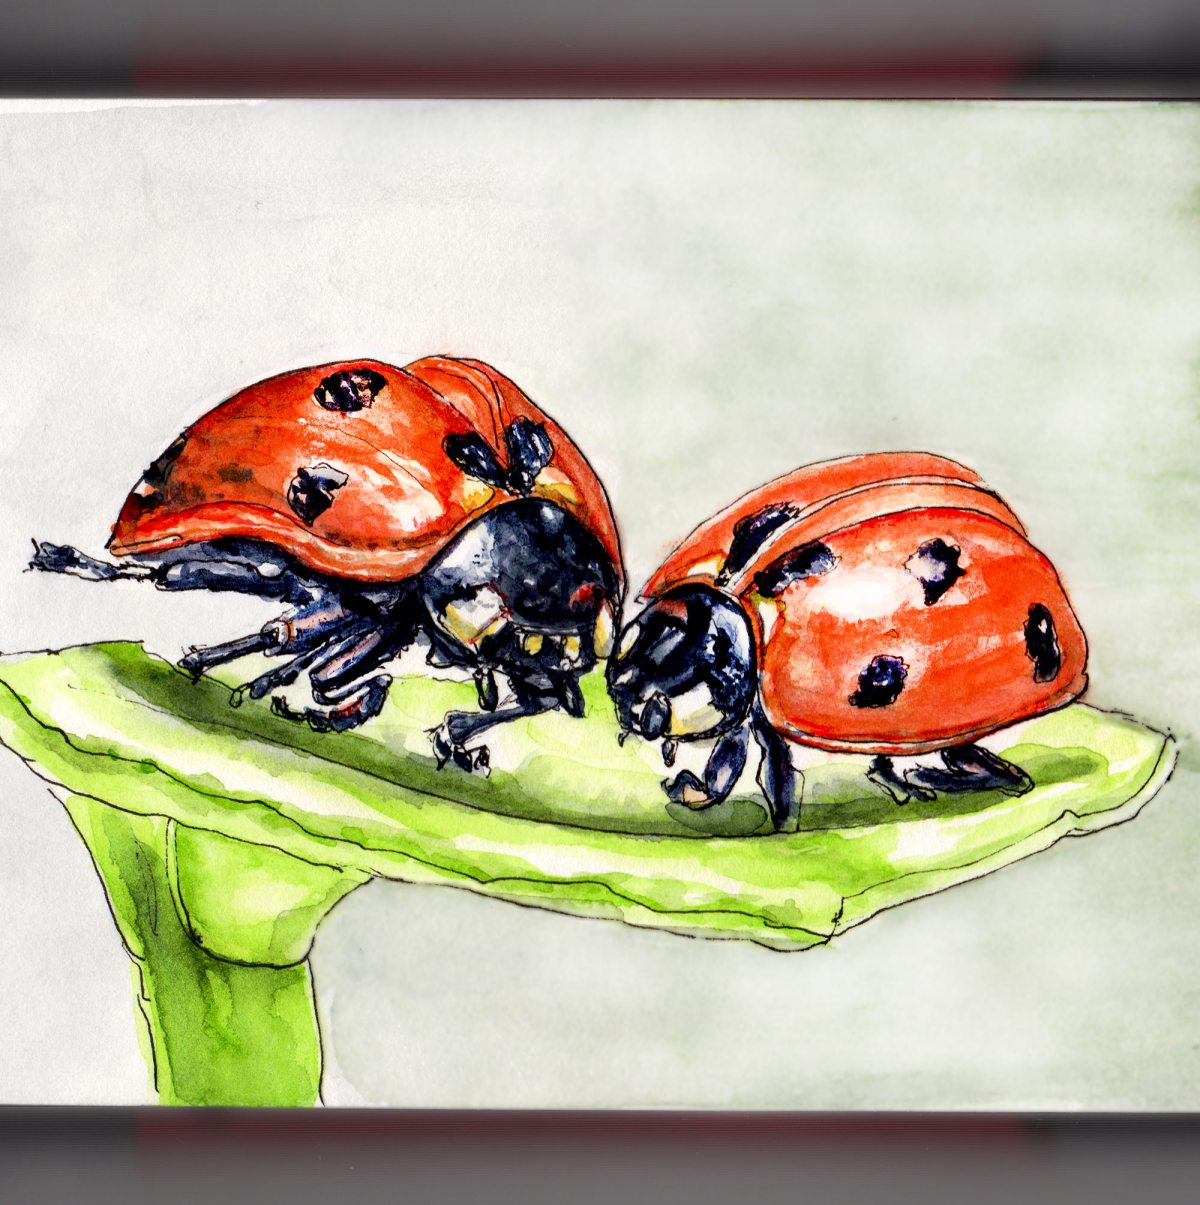 Day 14 - #WorldWatercolorGroup - Love Is All Around Us Two Ladybugs Kissing - #doodlewash